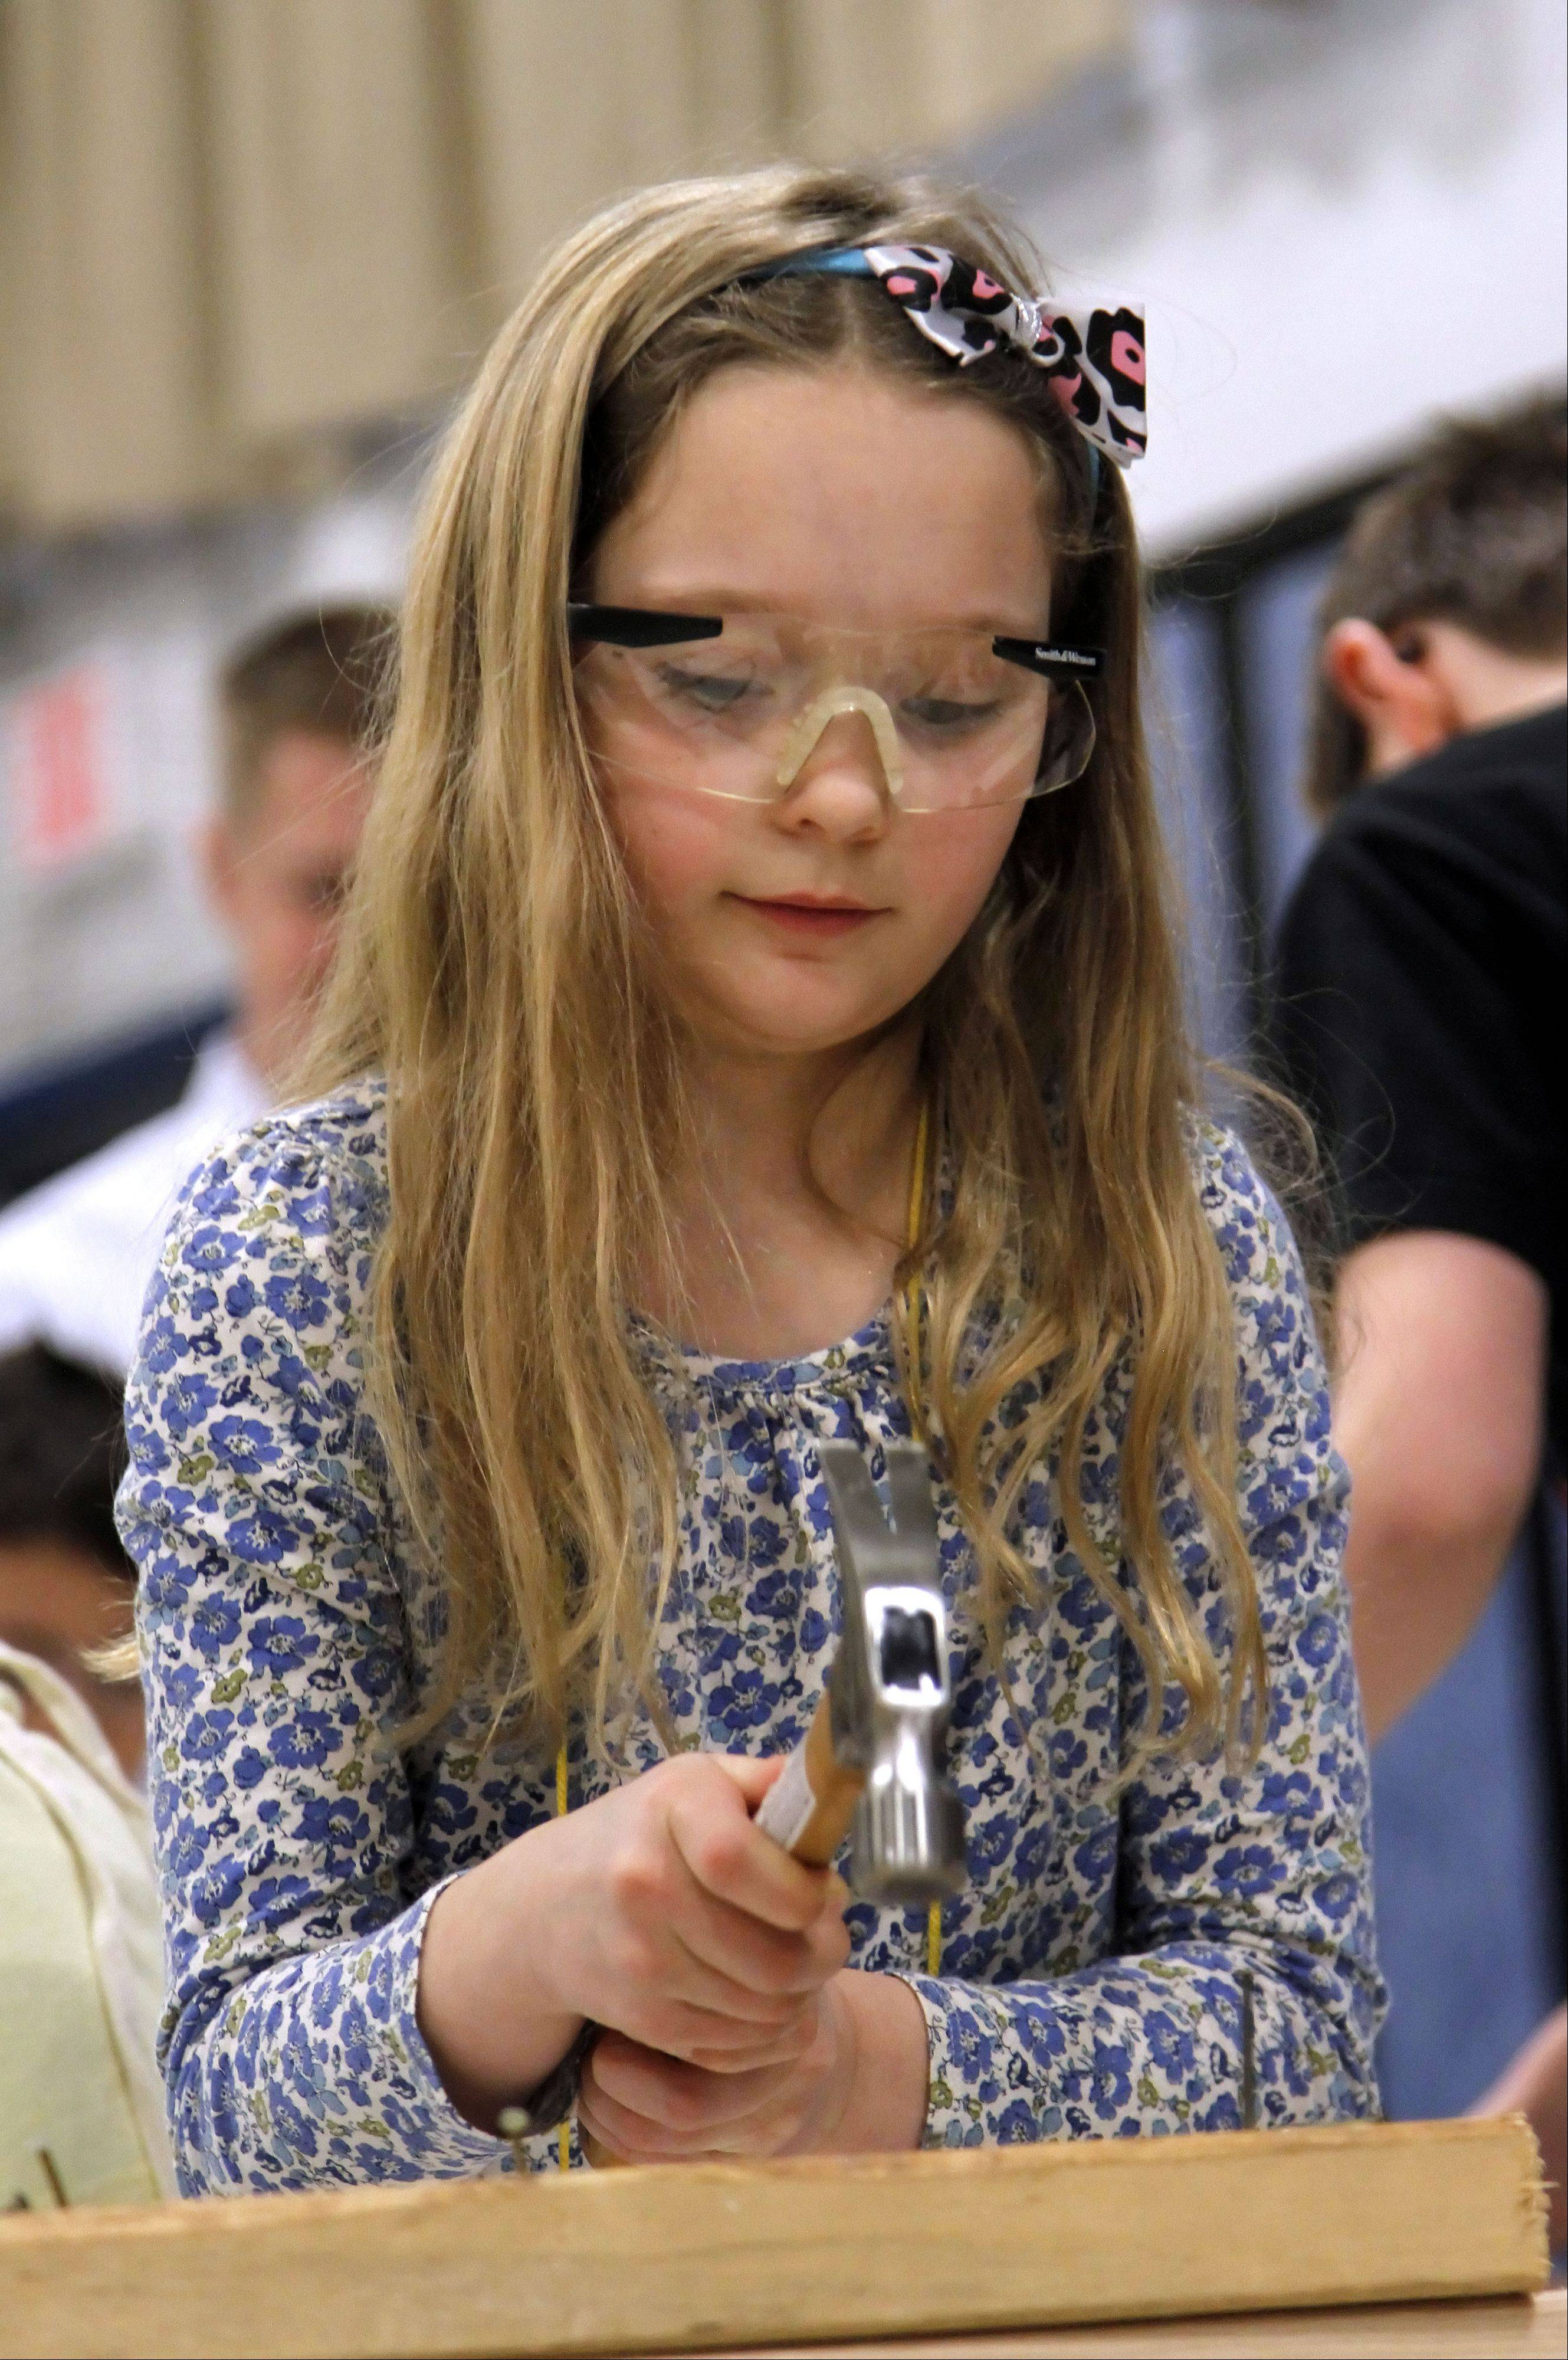 Emaline Frey, 7, gets the opportunity to pound some nails during career day at Rockland School in Libertyville.